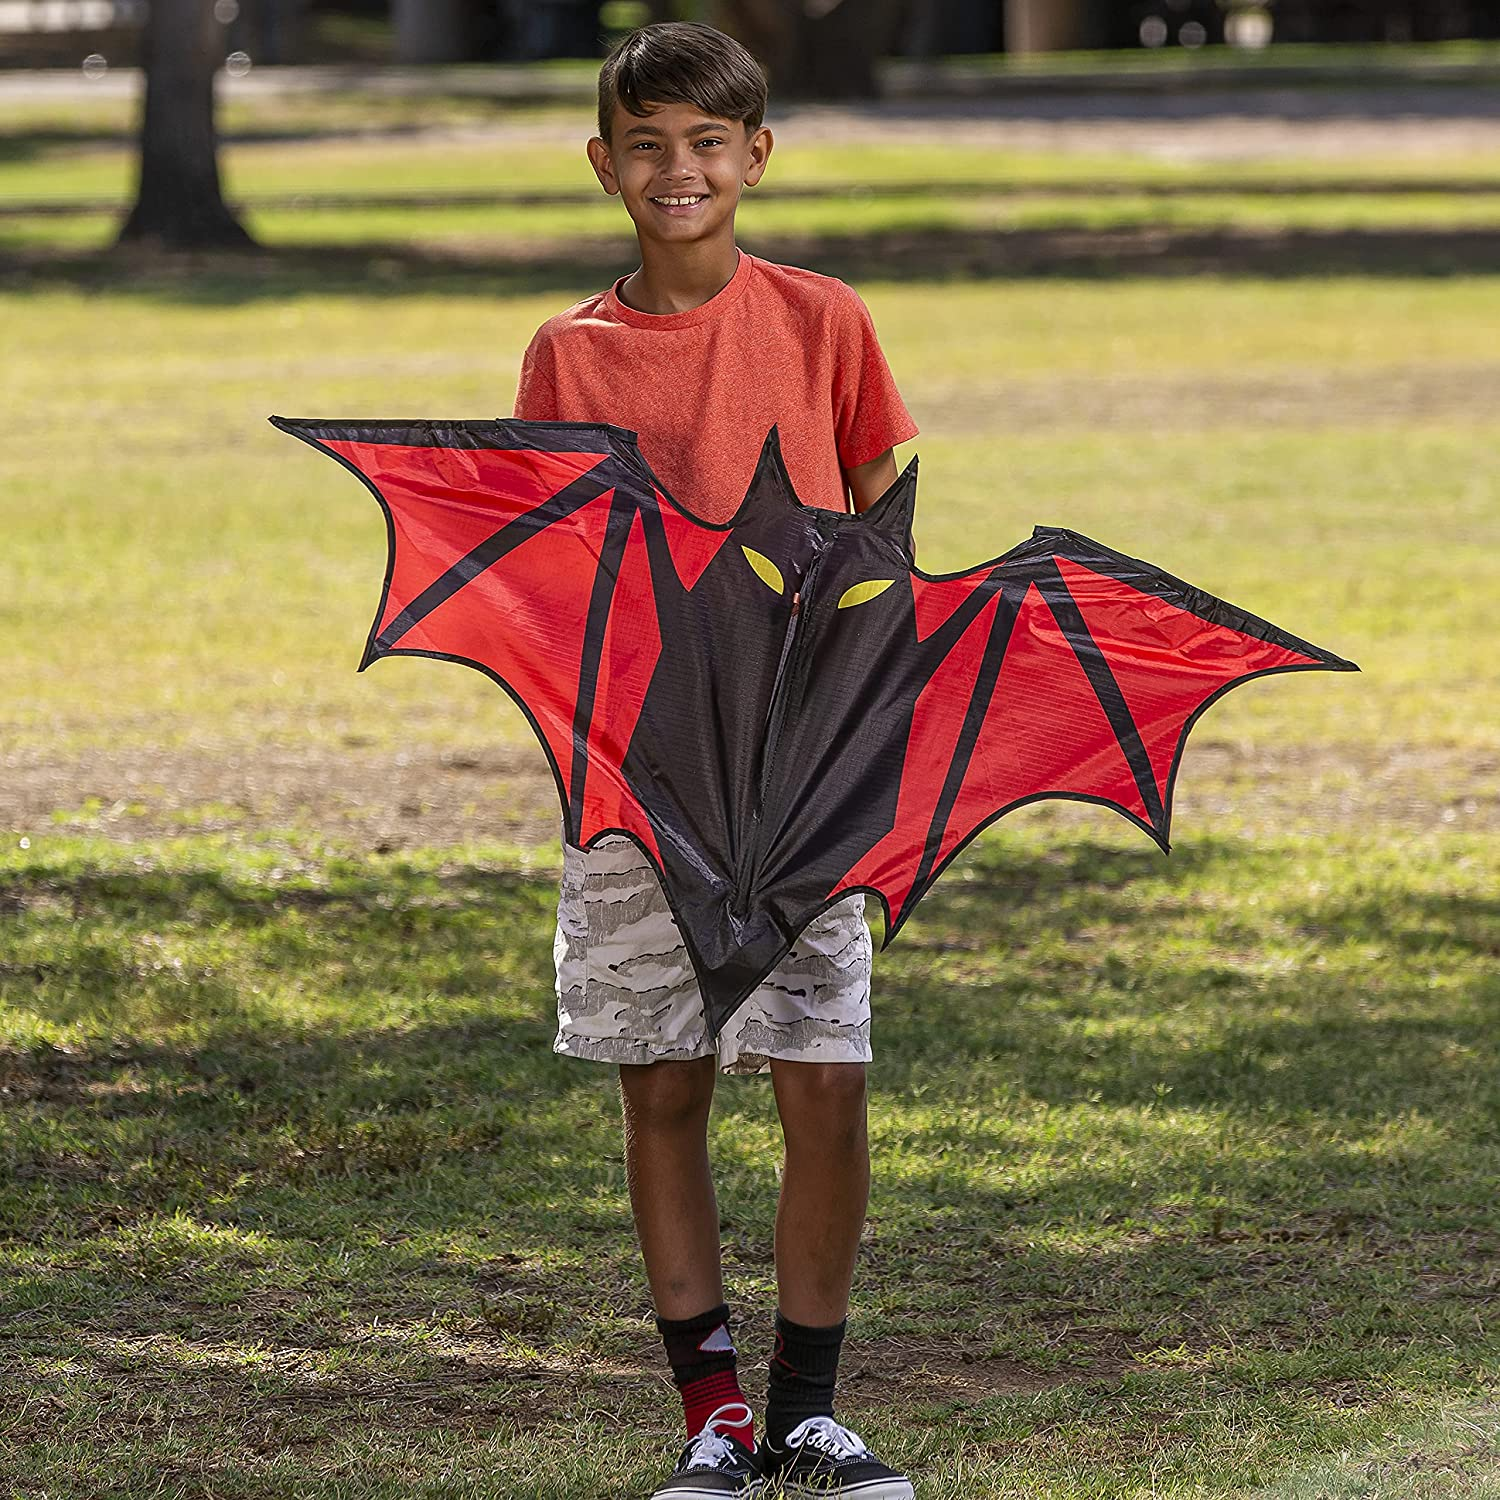 JOYIN Bat Inventory cleanup selling sale Kite Easy to Large-scale sale Fly Huge with Kids for and 26 Adults